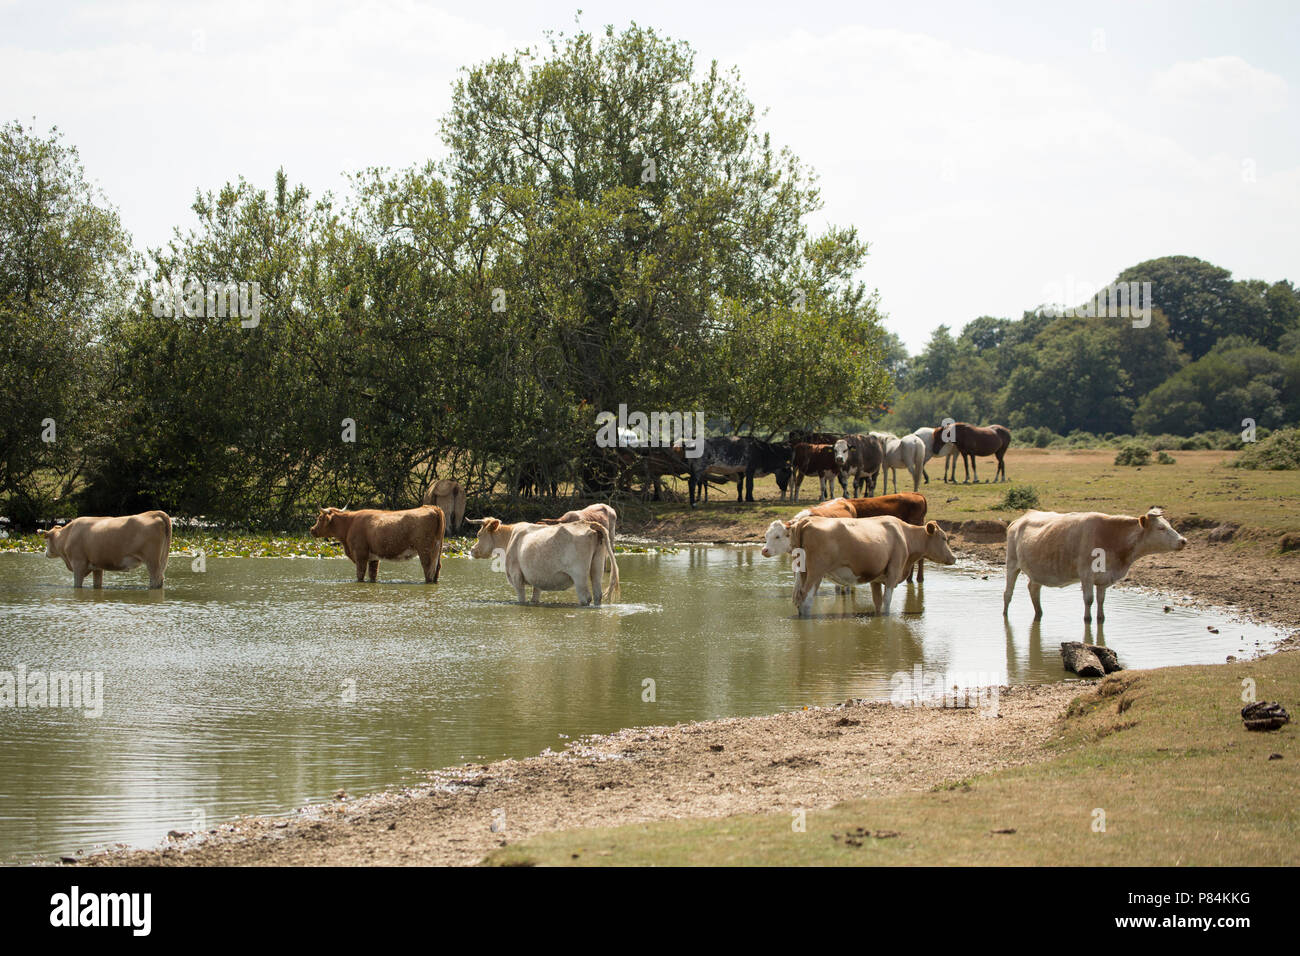 Cattle at Janesmoor Pond in the New Forest during the UK heatwave of 2018. 7.7.18. New Forest Hampshire England UK GB - Stock Image